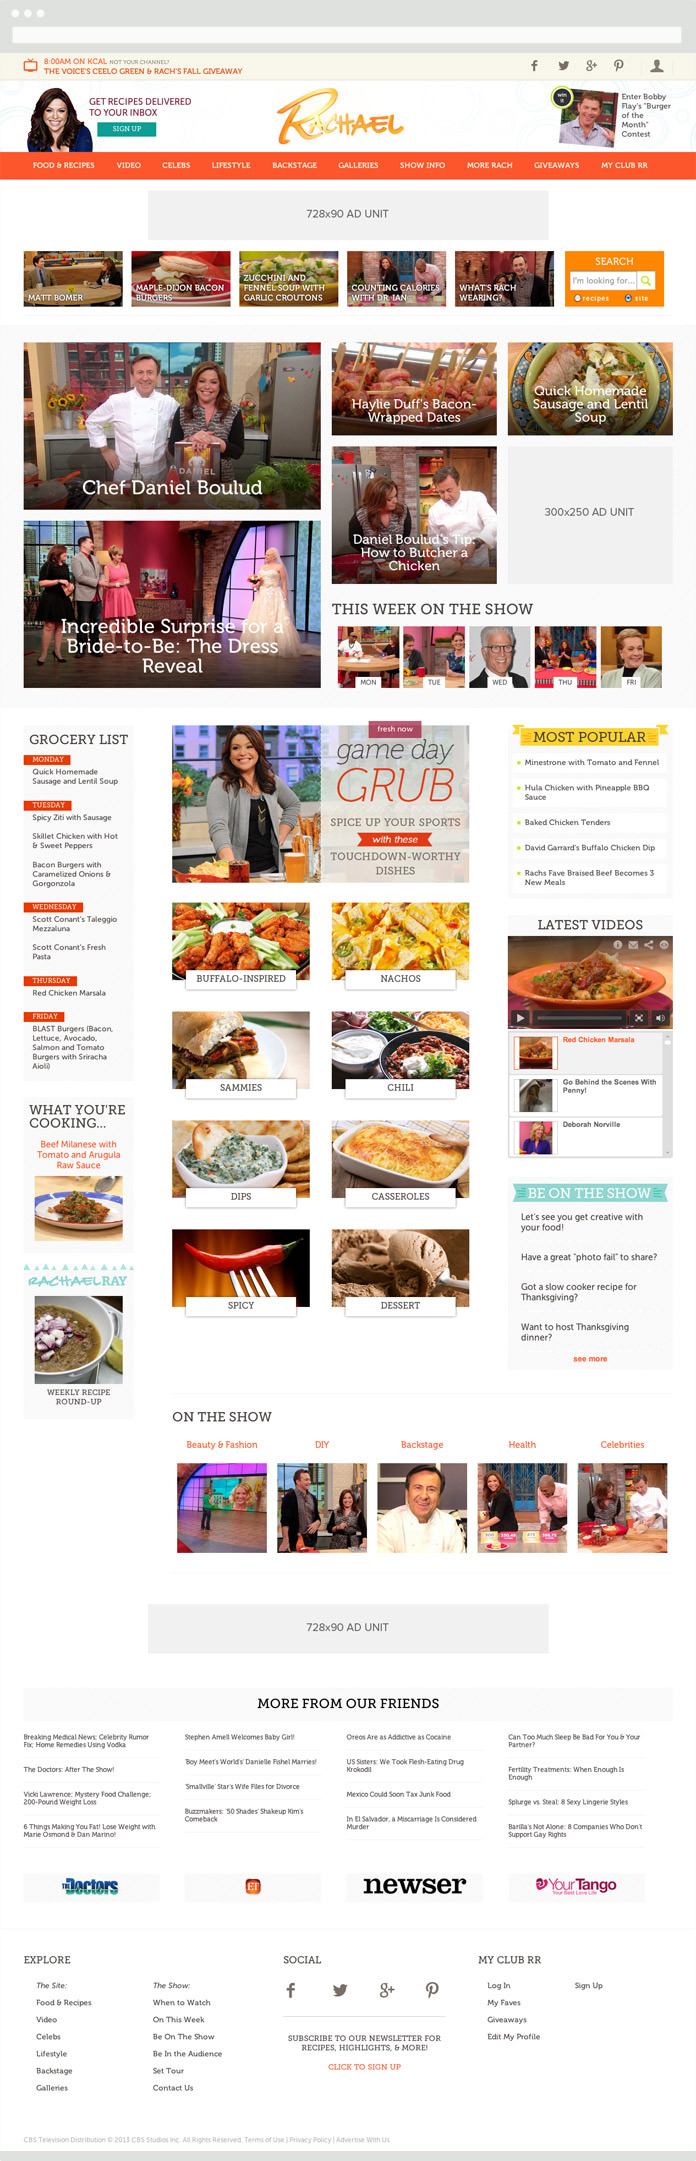 Image of the Rachael Ray Show Homepage